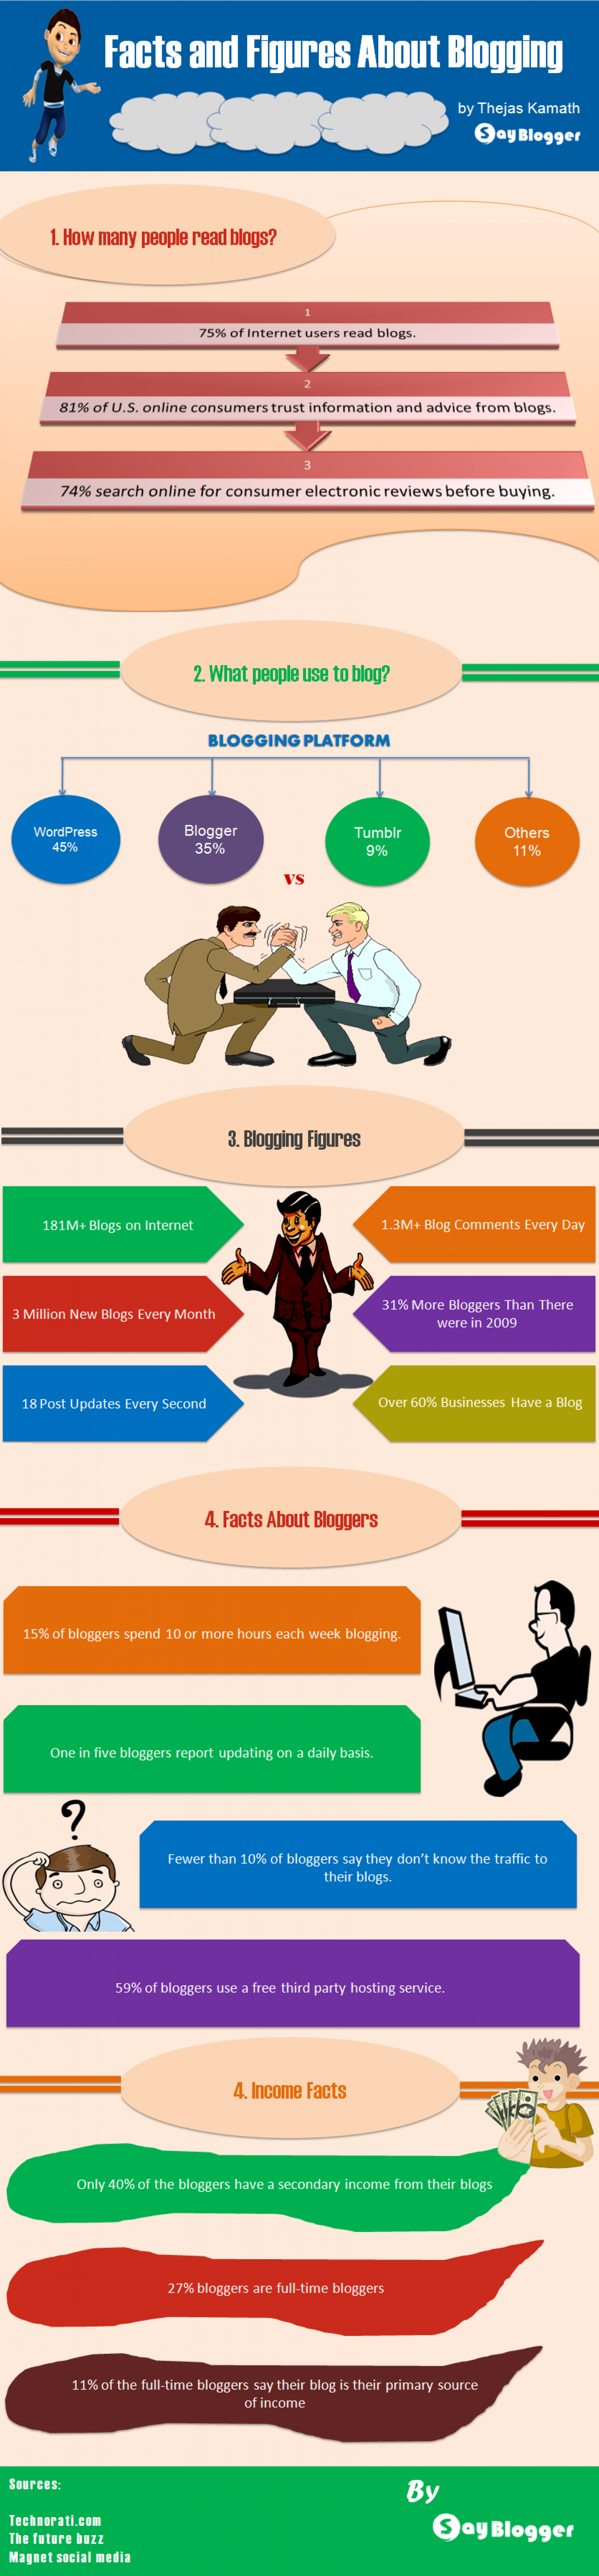 Facts and Figures About Blogging Infographic